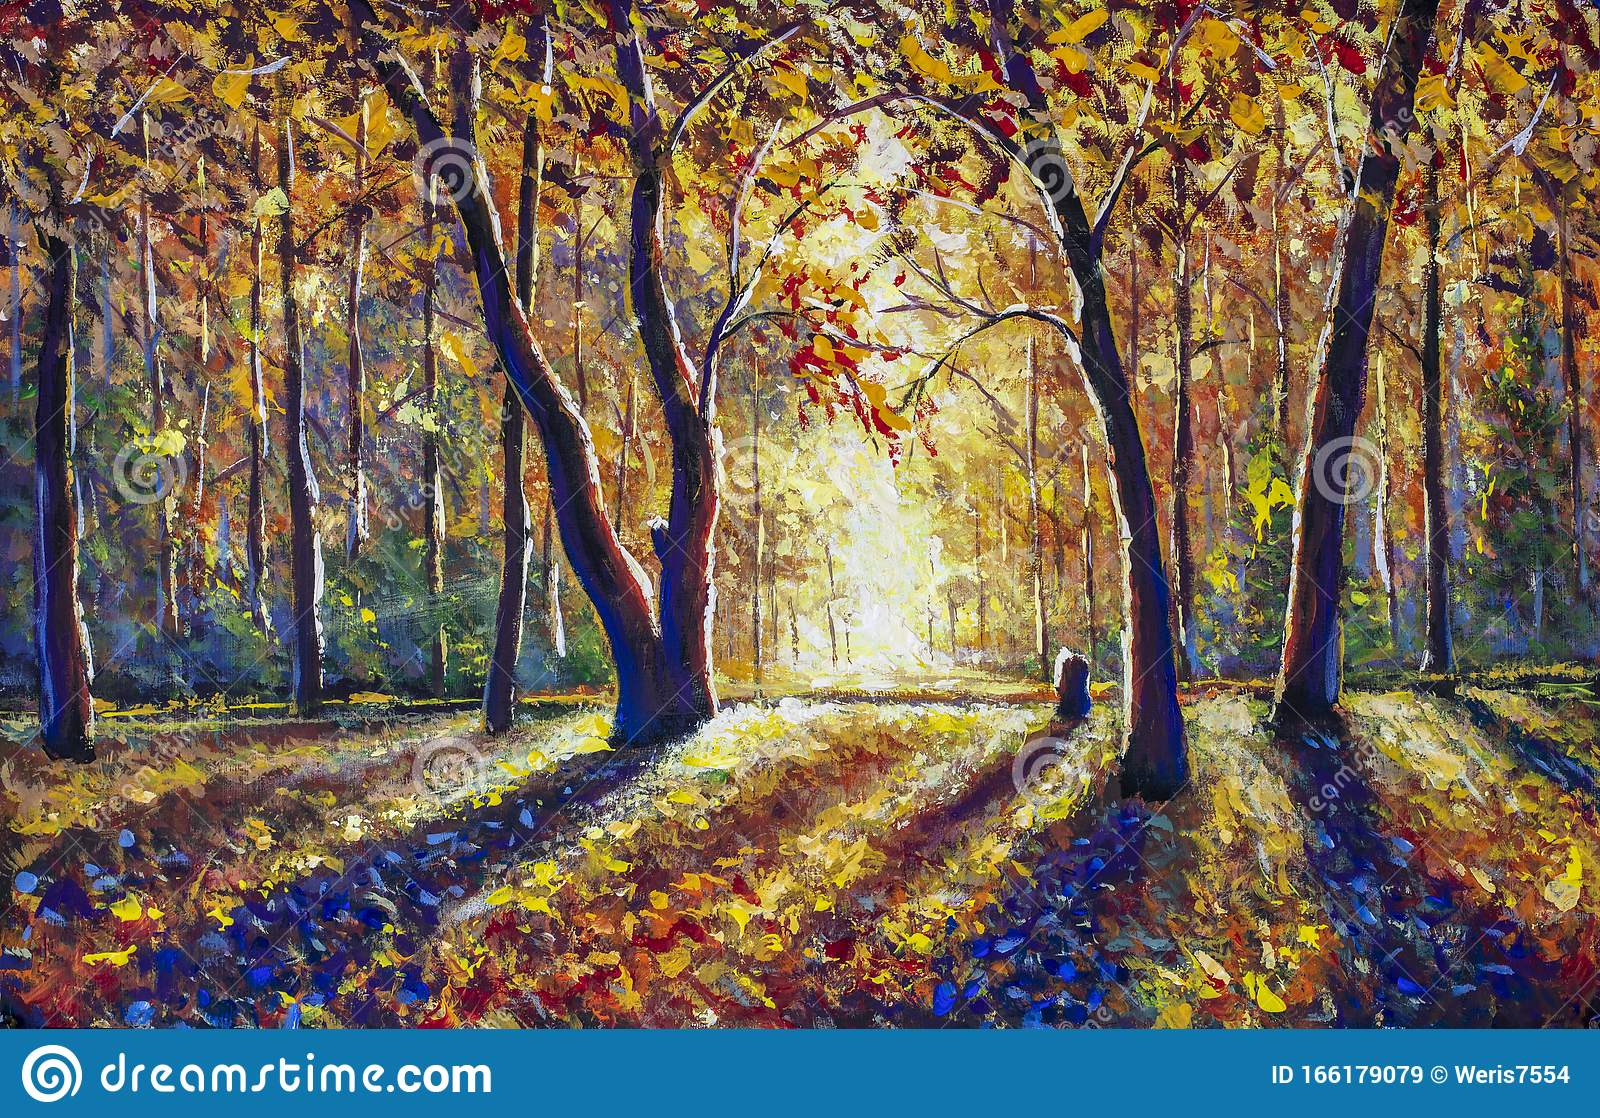 Leaf image brown wooden bridge in forest painting image nature,. Beautiful Autumn Sunny Forest Gold Orange Warm Autumn Landscape Stock Illustration Illustration Of Outdoor Beauty 166179079